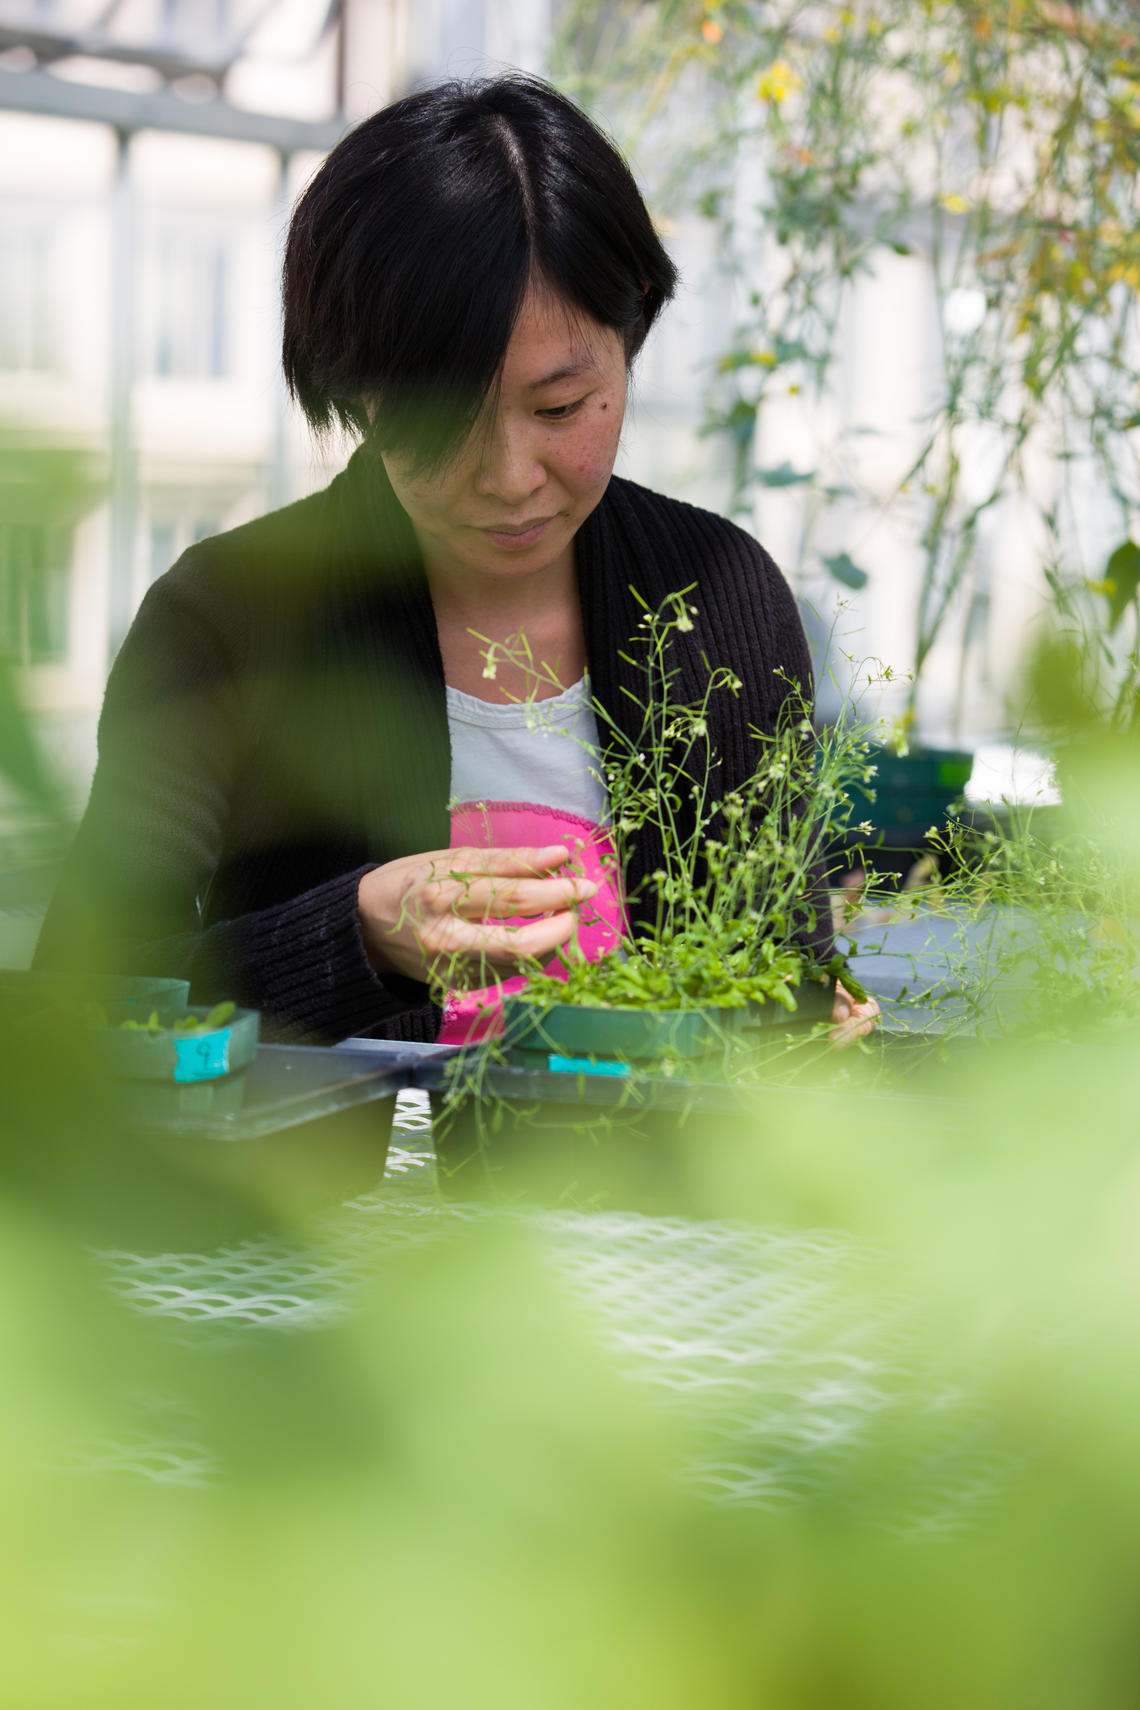 Siyu Liang, PhD student in Samuel's group, says the finding provides a  new way to improve plant drought tolerance.